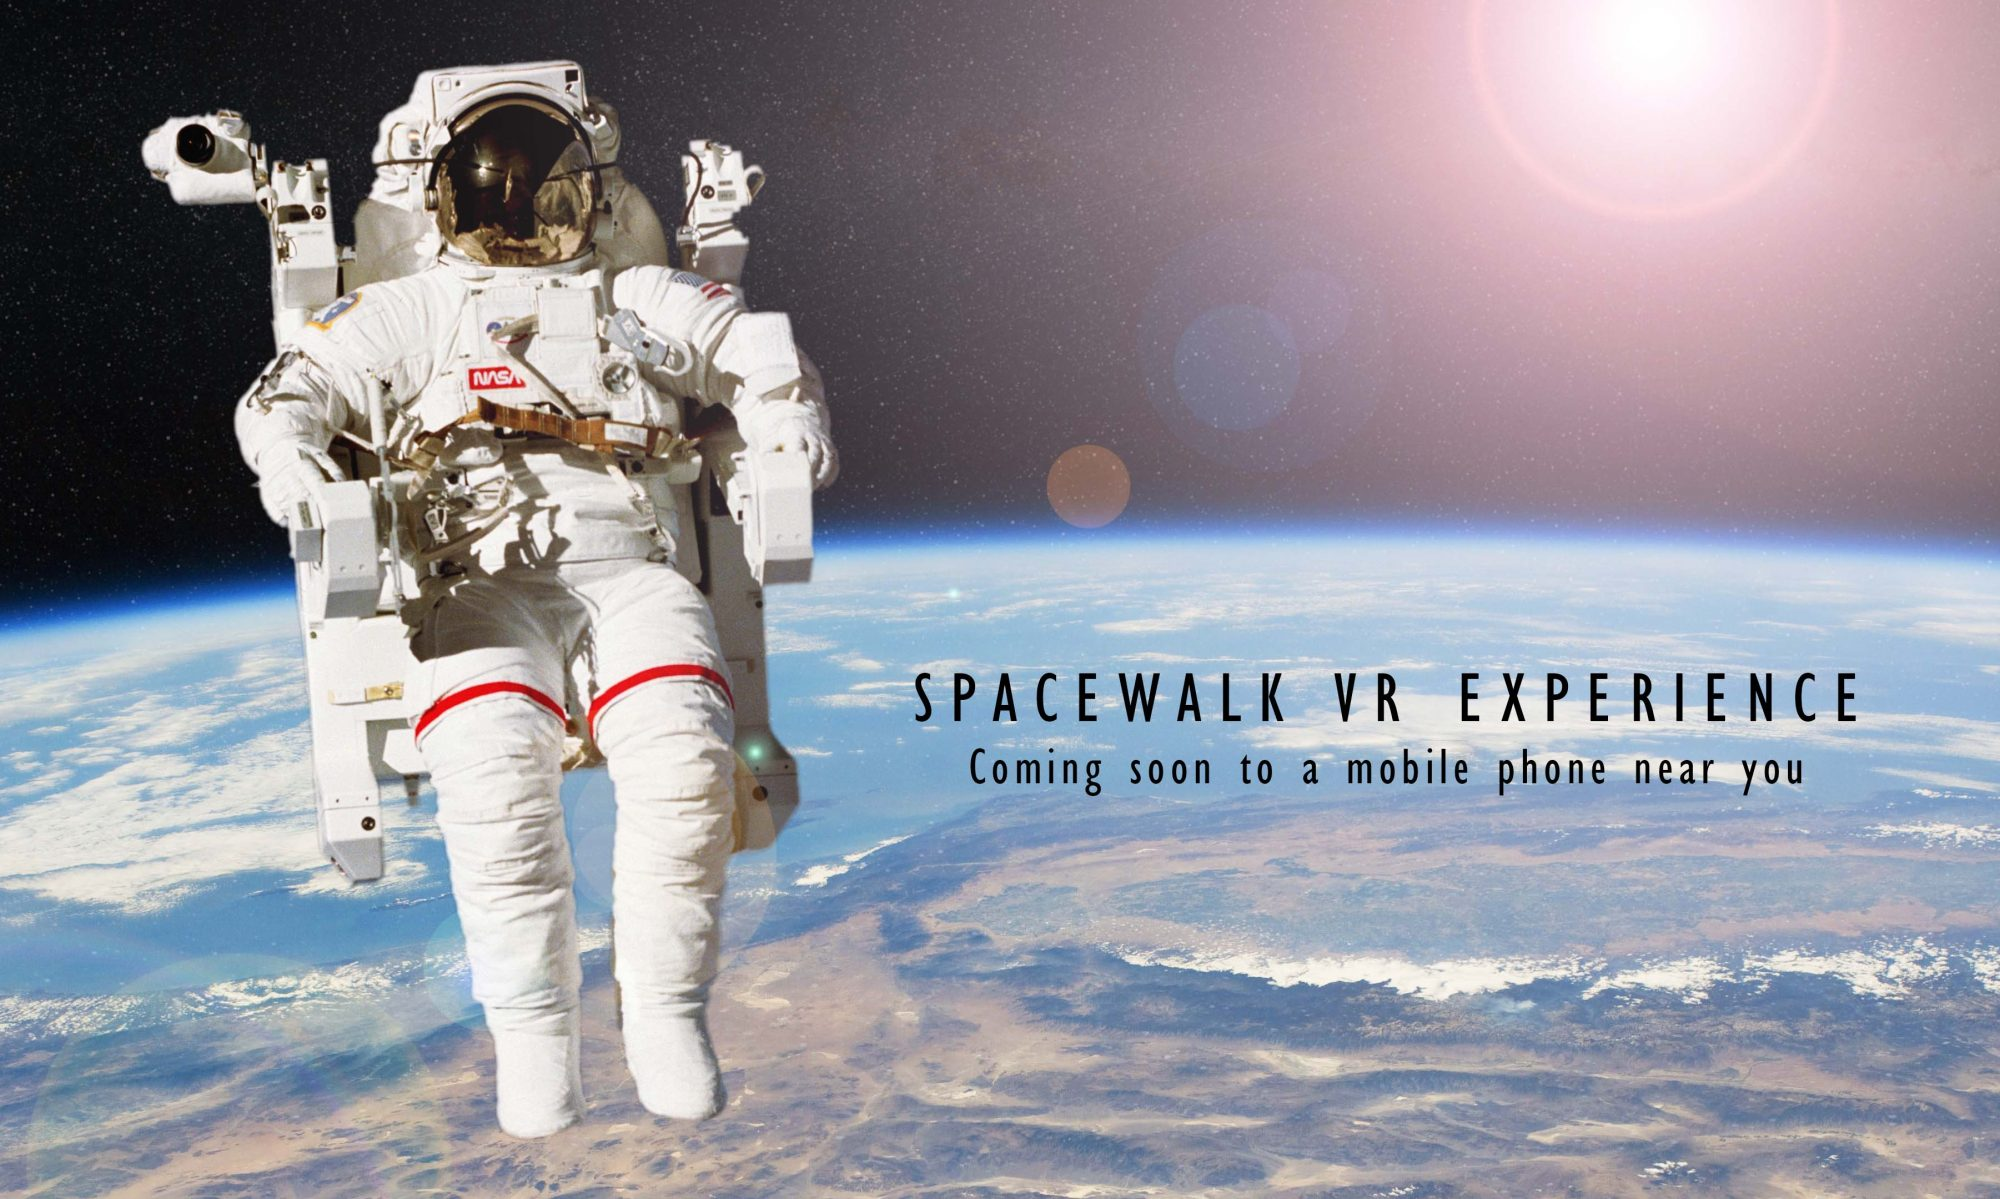 Spacewalk VR Experience by Forth Interact